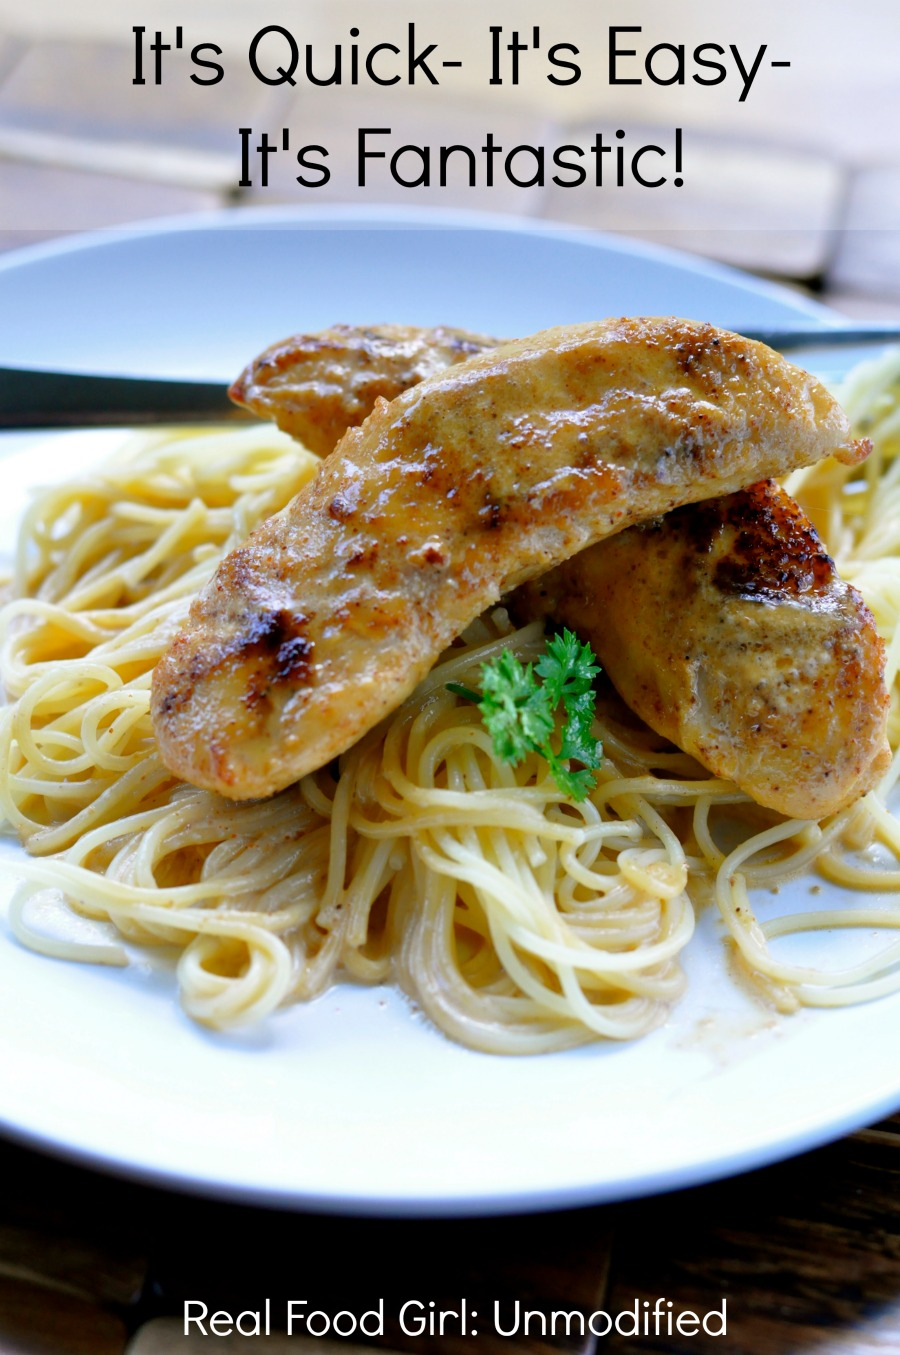 Crazy Chicken- Super fast, easy, ridiculously tasty chicken dish by Real Food Girl: Unmodified